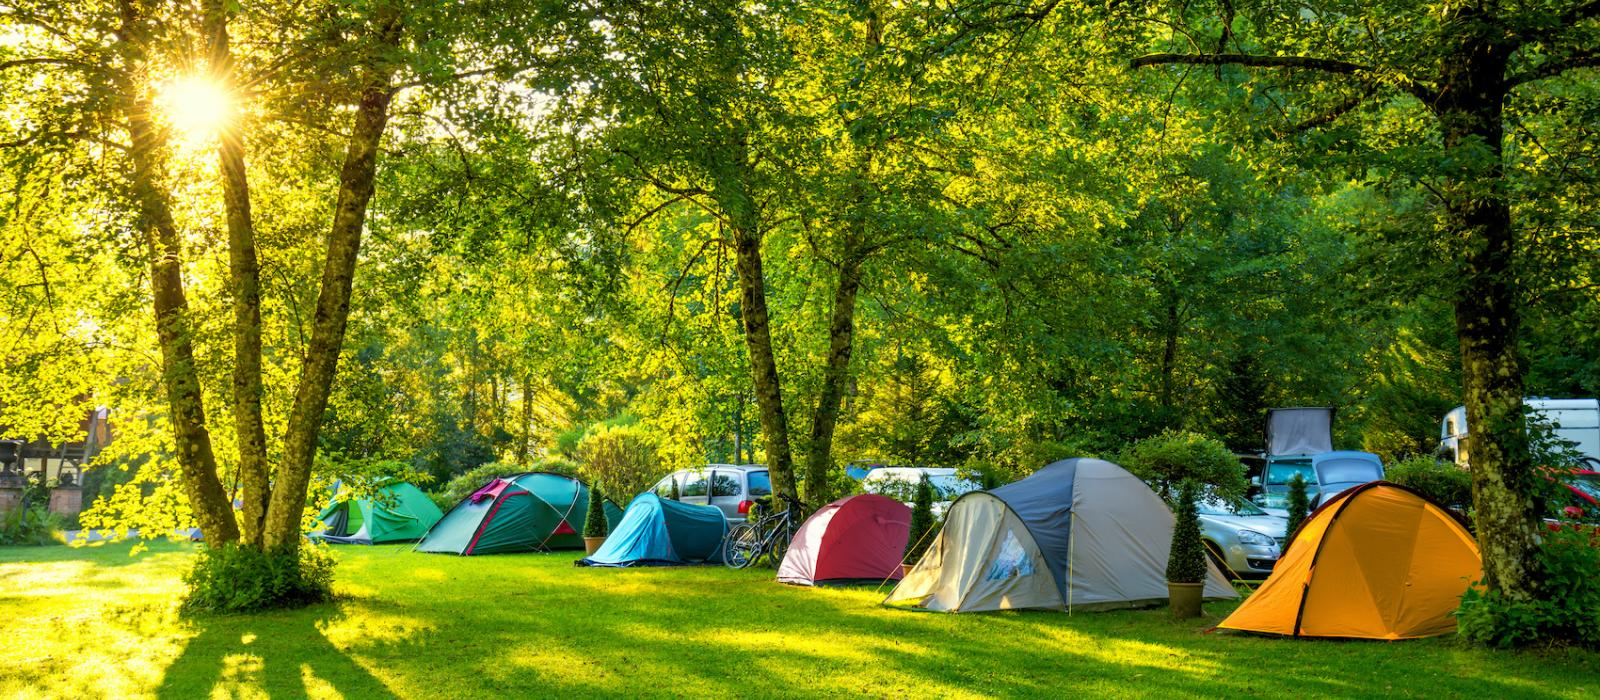 campground regulations